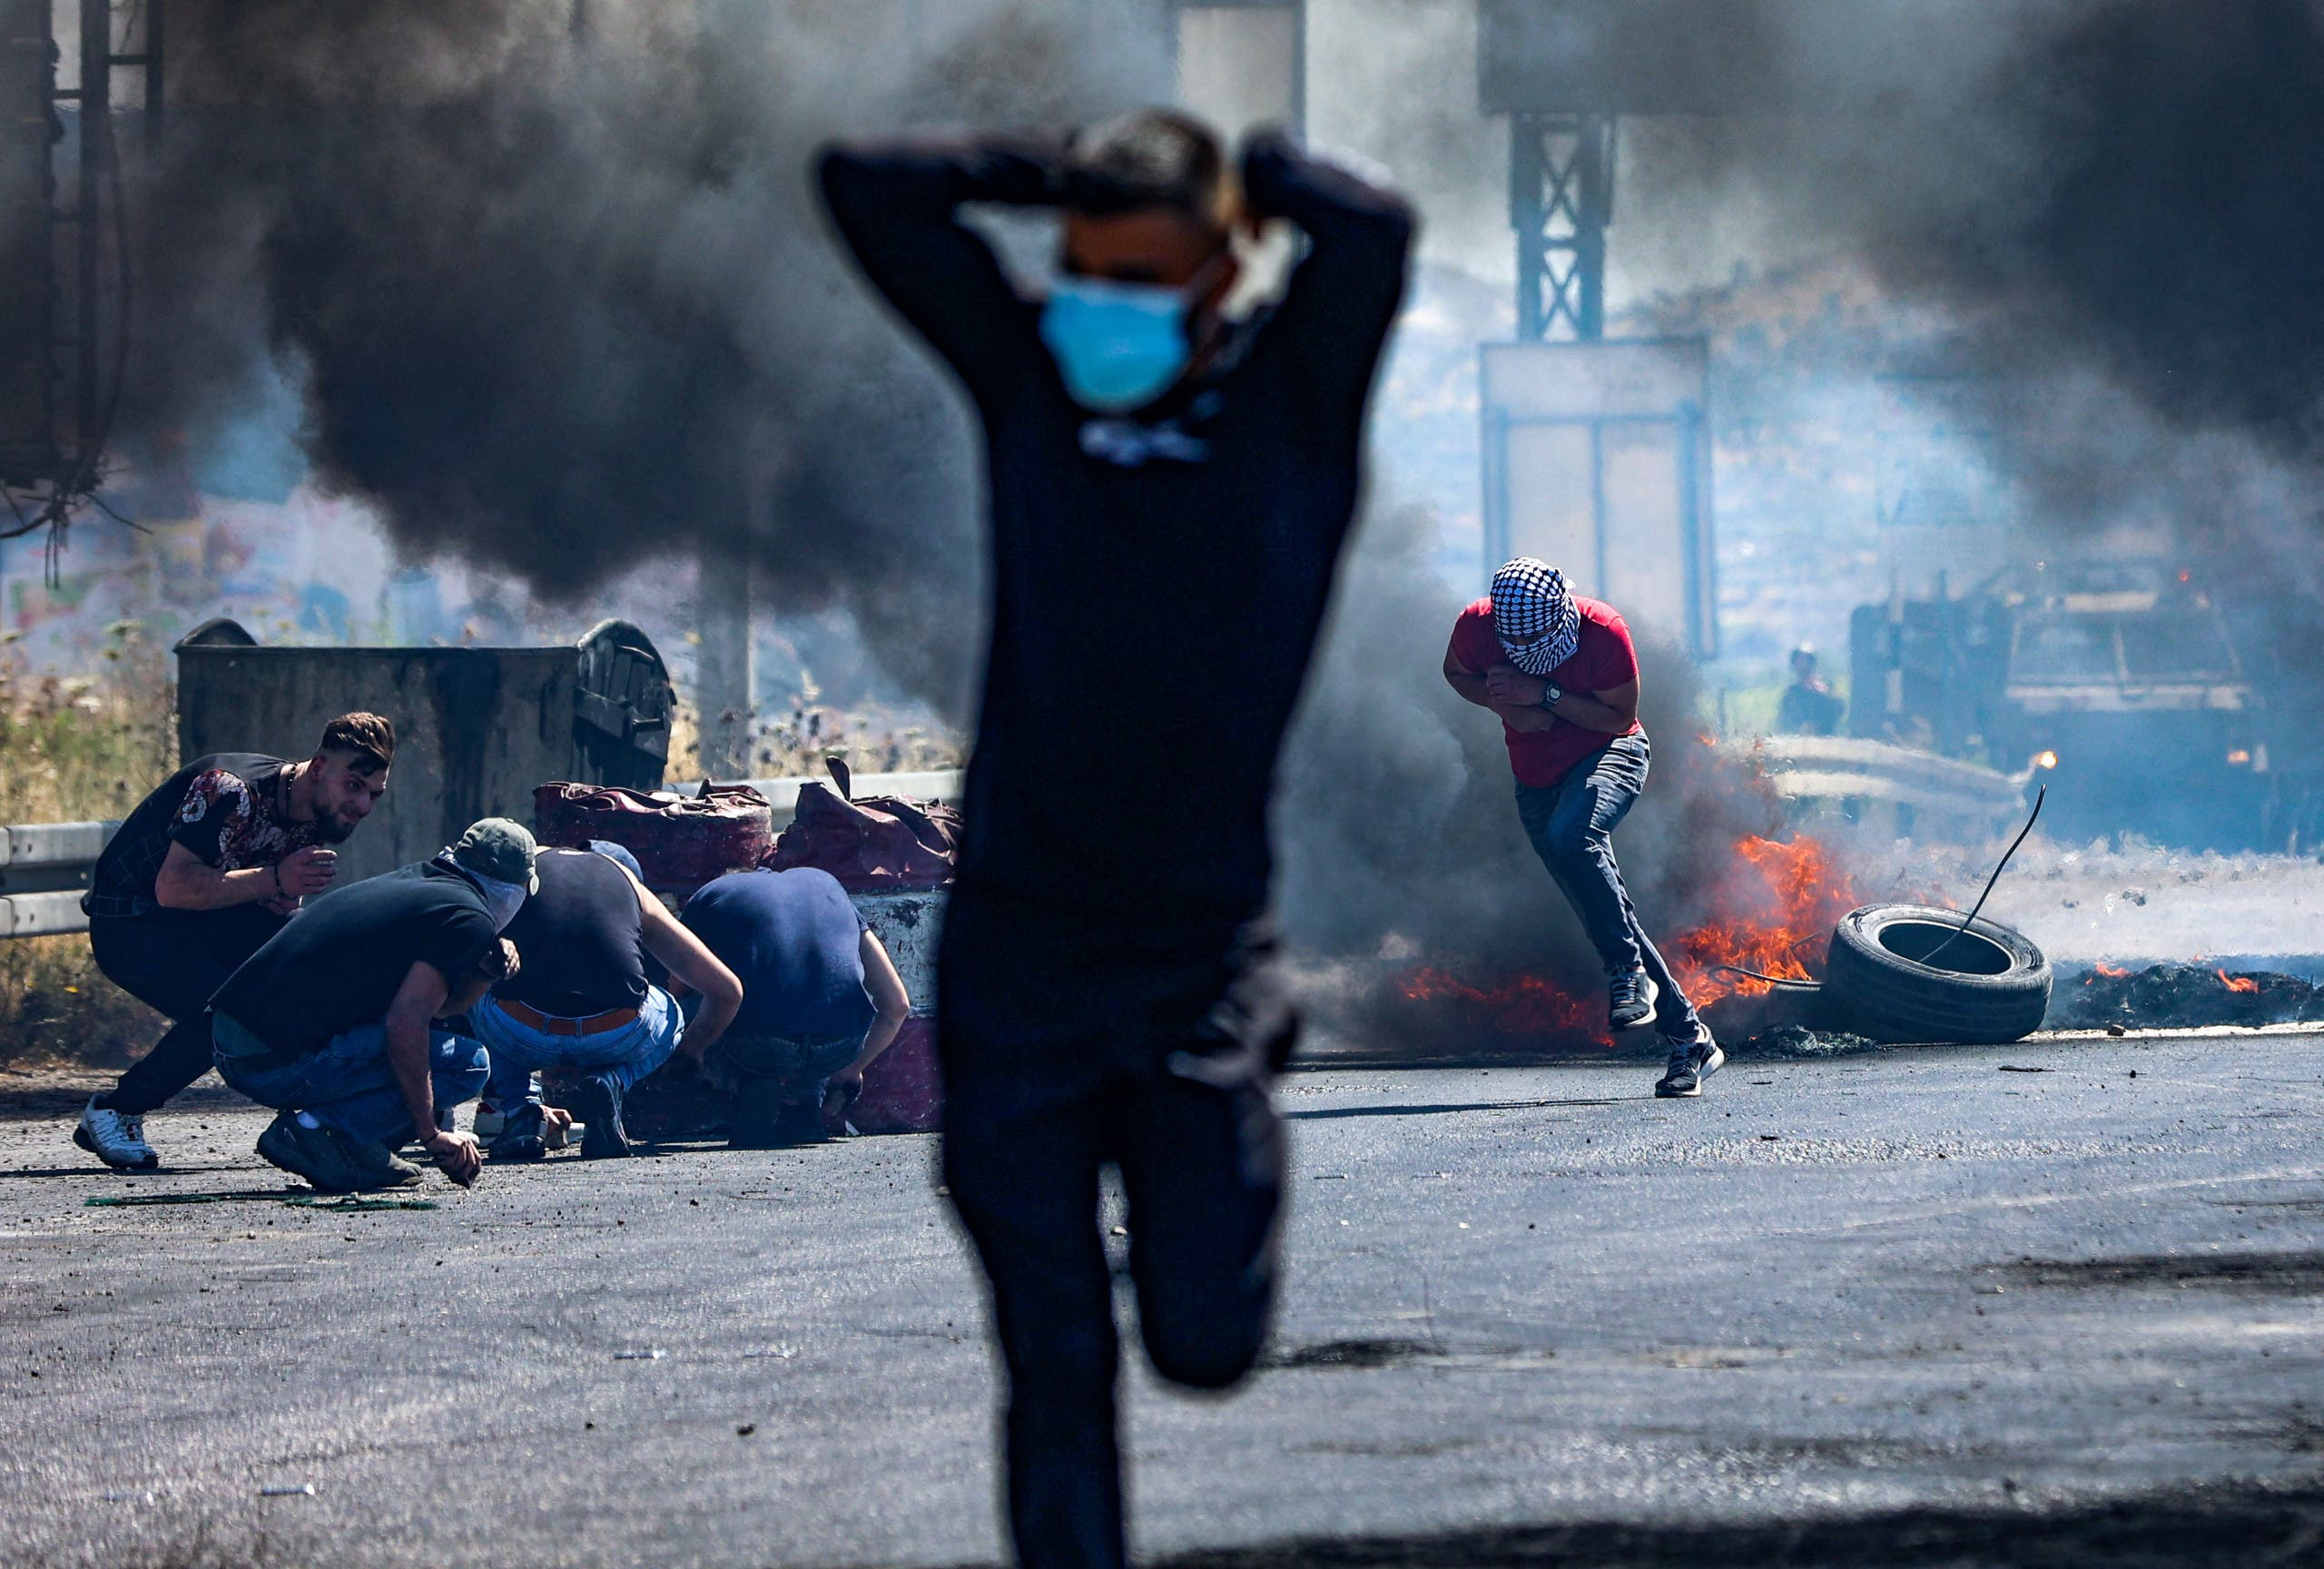 Palestinians run as others take cover, during confrontations with Israeli security forces near the Hawara checkpoint south of the occupied West Bank city of Nablus, on May 14, 2021. (AFP)